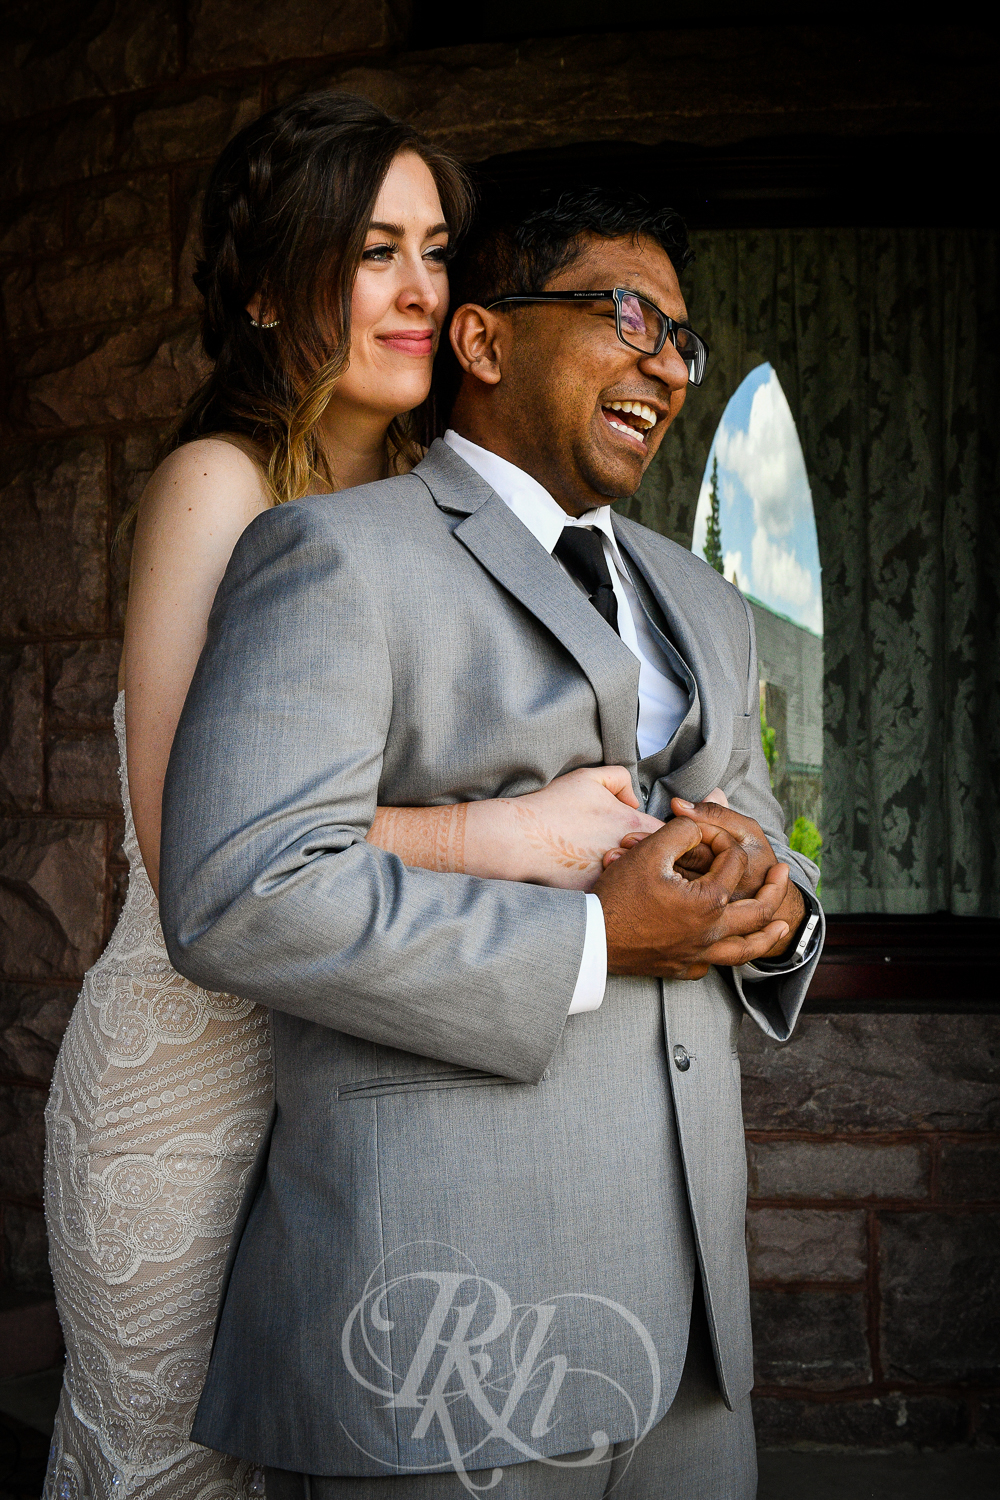 Megan & Gavin - Minnesota Wedding Photography - Van Dusen Mansion - RKH Ikmages -25.jpg